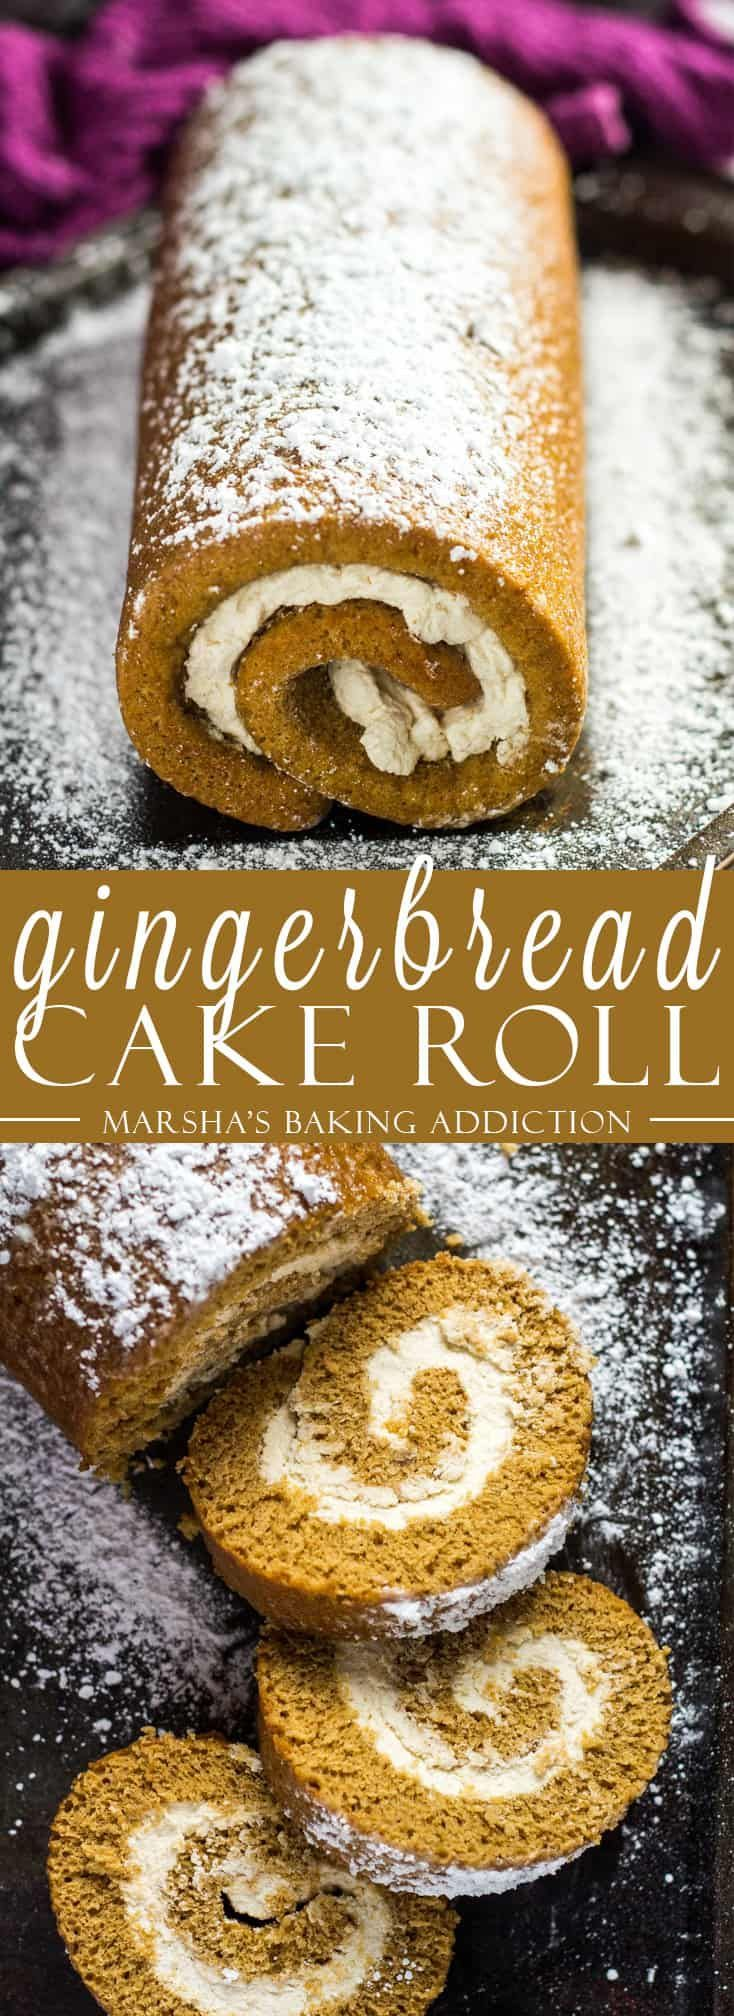 Gingerbread Cake Roll- Deliciously moist and fluffy gingerbread cake roll that is loaded with warm, cozy flavours, and filled with homemade spiced whipped cream! Recipe on marshasbakingaddiction.com #swissroll #gingerbread #cake #Christmas